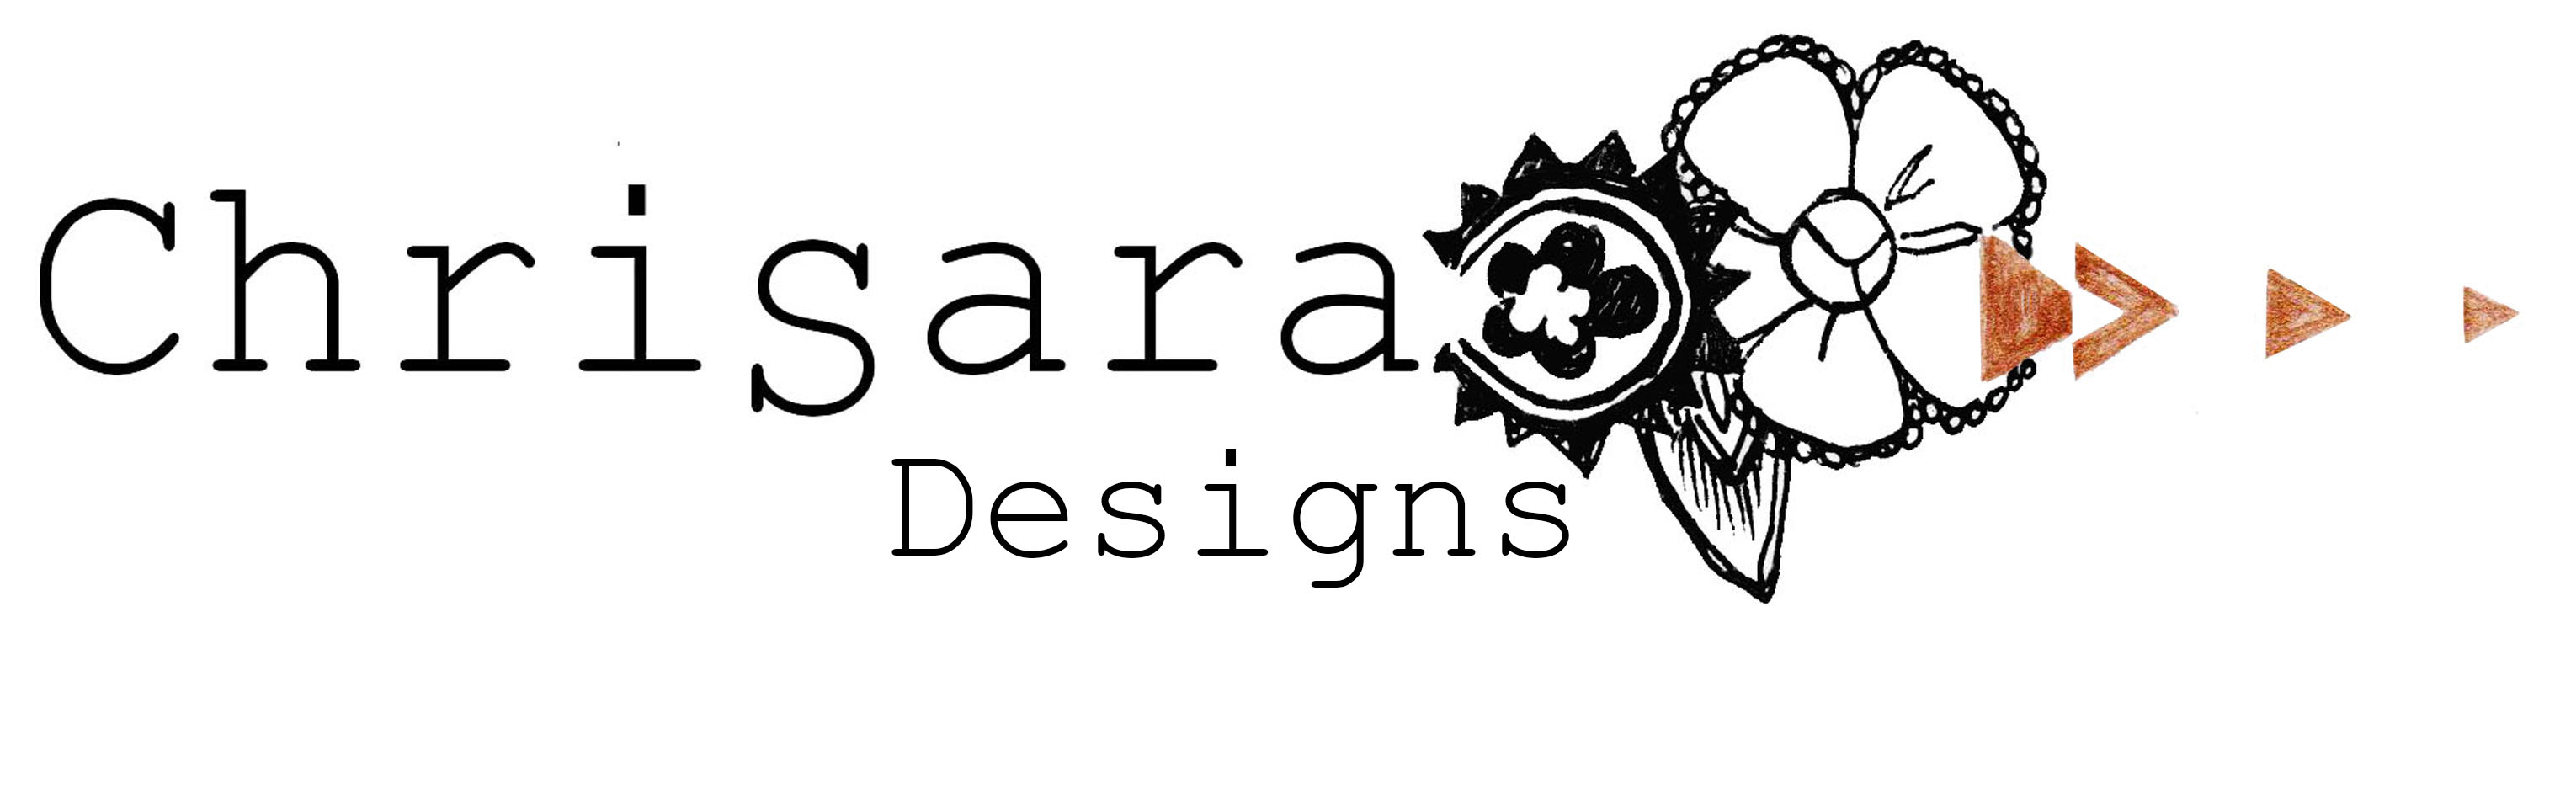 Chrisara Designs